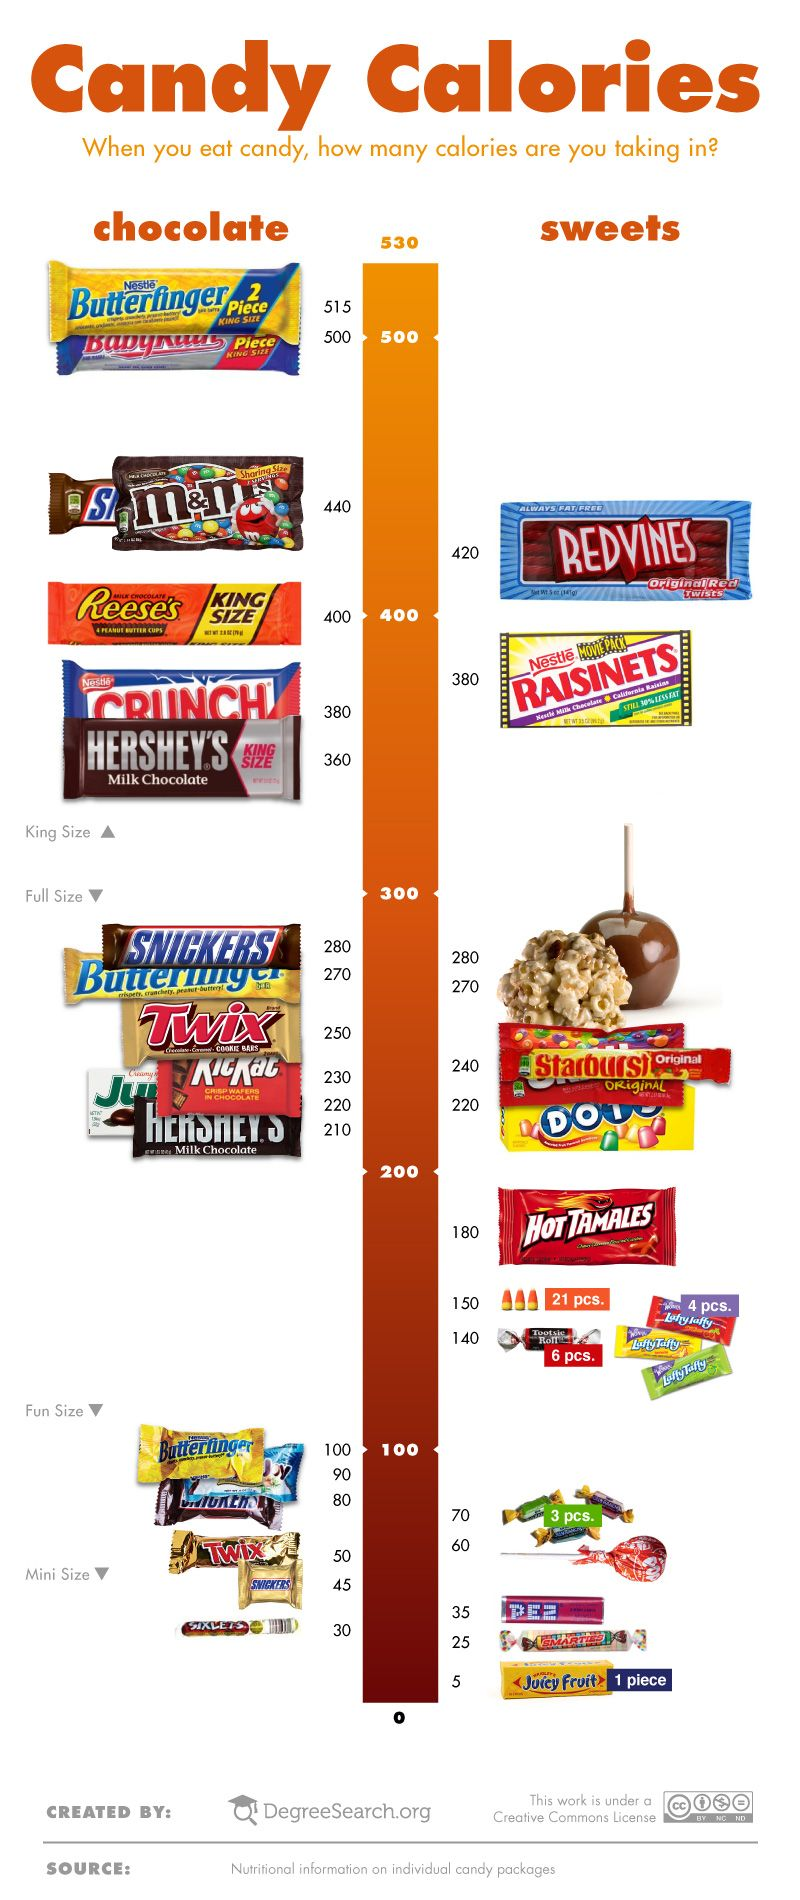 Forum on this topic: Carbs and Calories in Halloween Candy, carbs-and-calories-in-halloween-candy/